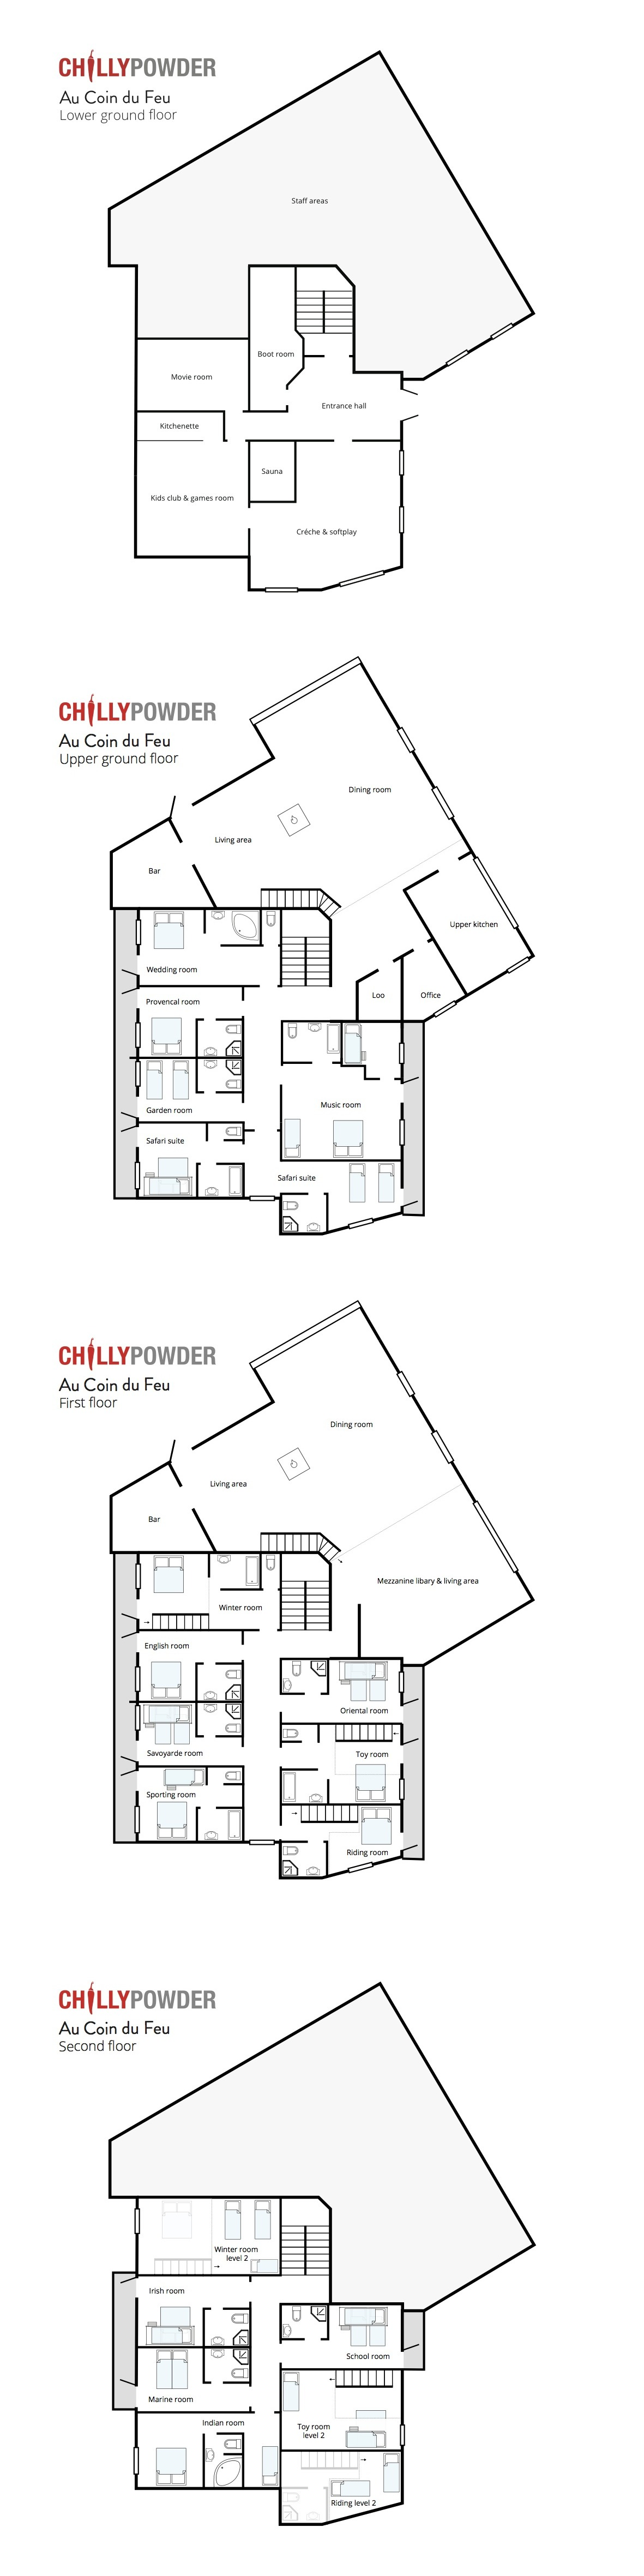 Download Au_Coin_du_Feu_total_floorplans